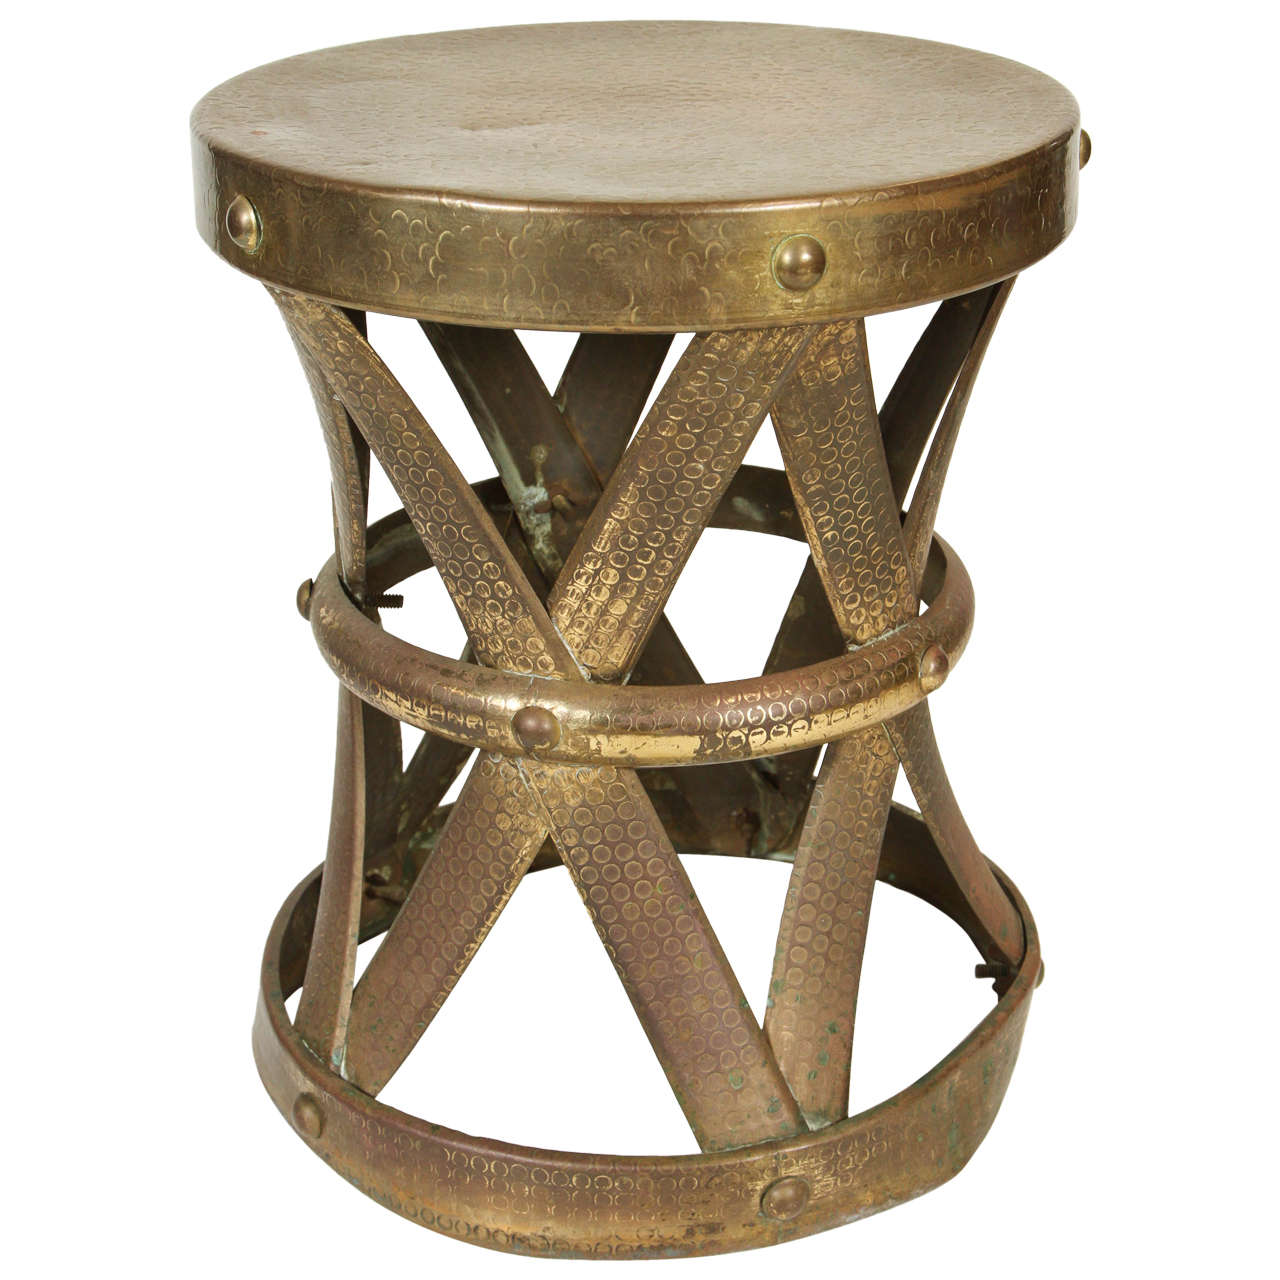 Vintage brass x drum table or stool at 1stdibs for Drum side table